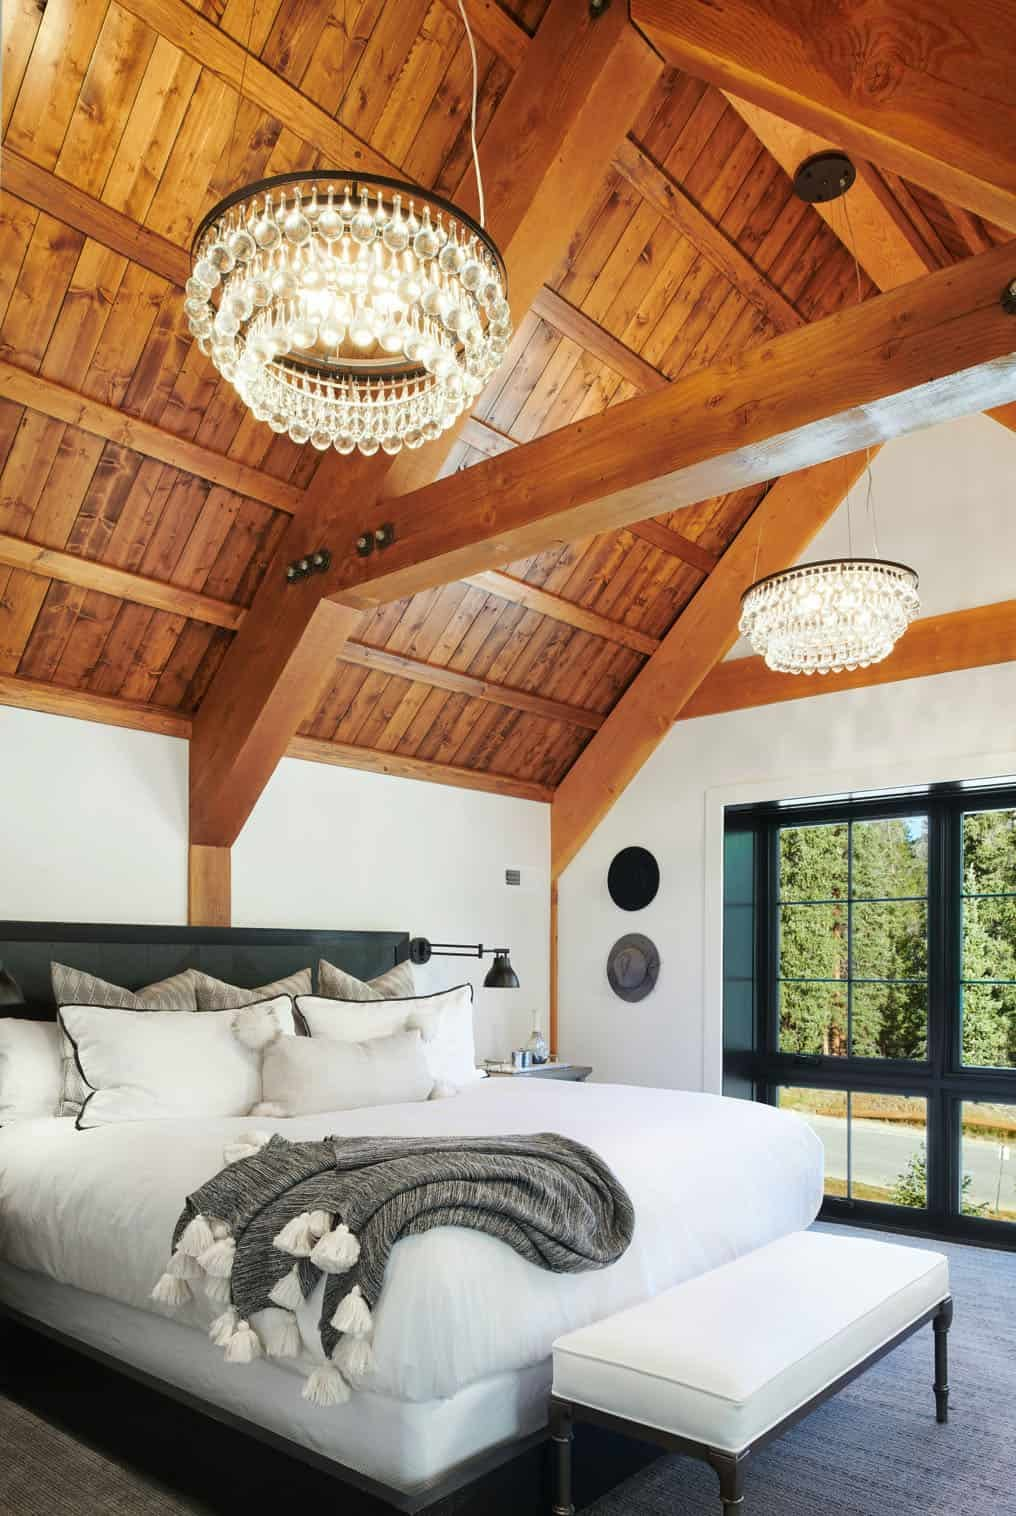 The bedroom features a slanted ceiling accent with crystal chandeliers and cool views